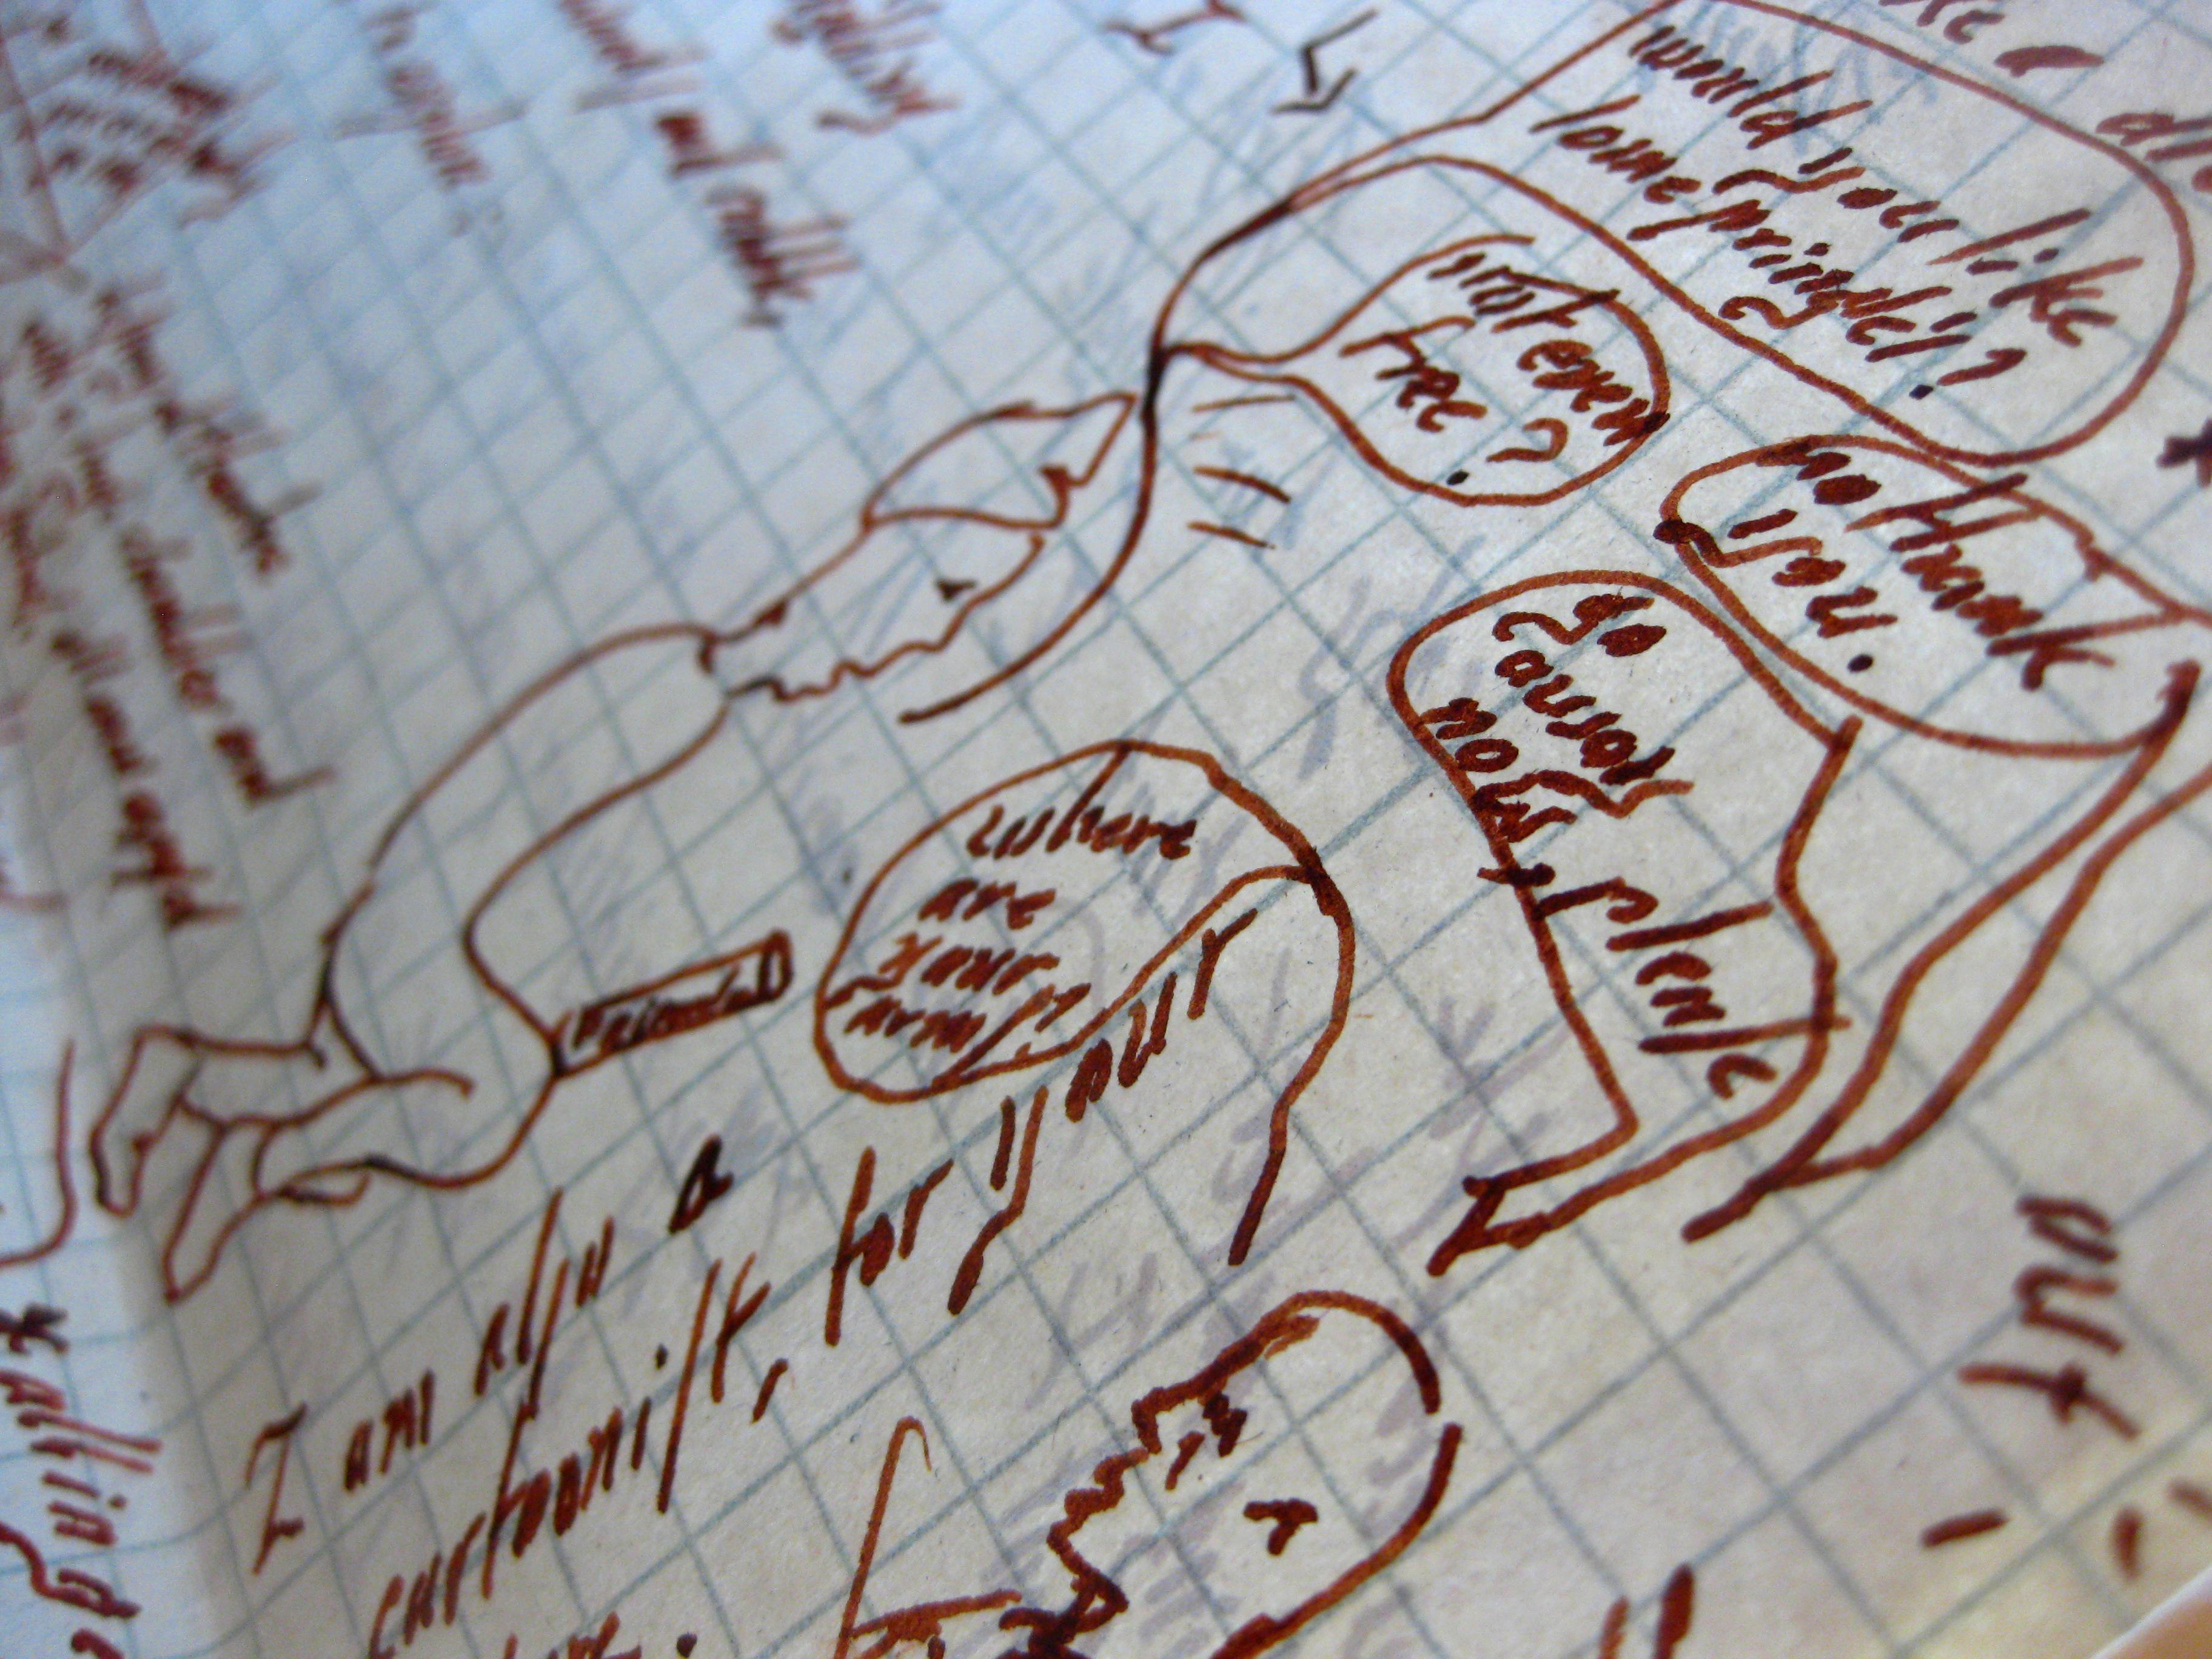 Try A Short, Creative Exercise €� Getting Back To Creativity Means Shutting  Down Your Practical Mental State You Can Do This Rather Quickly By Writing  A Few